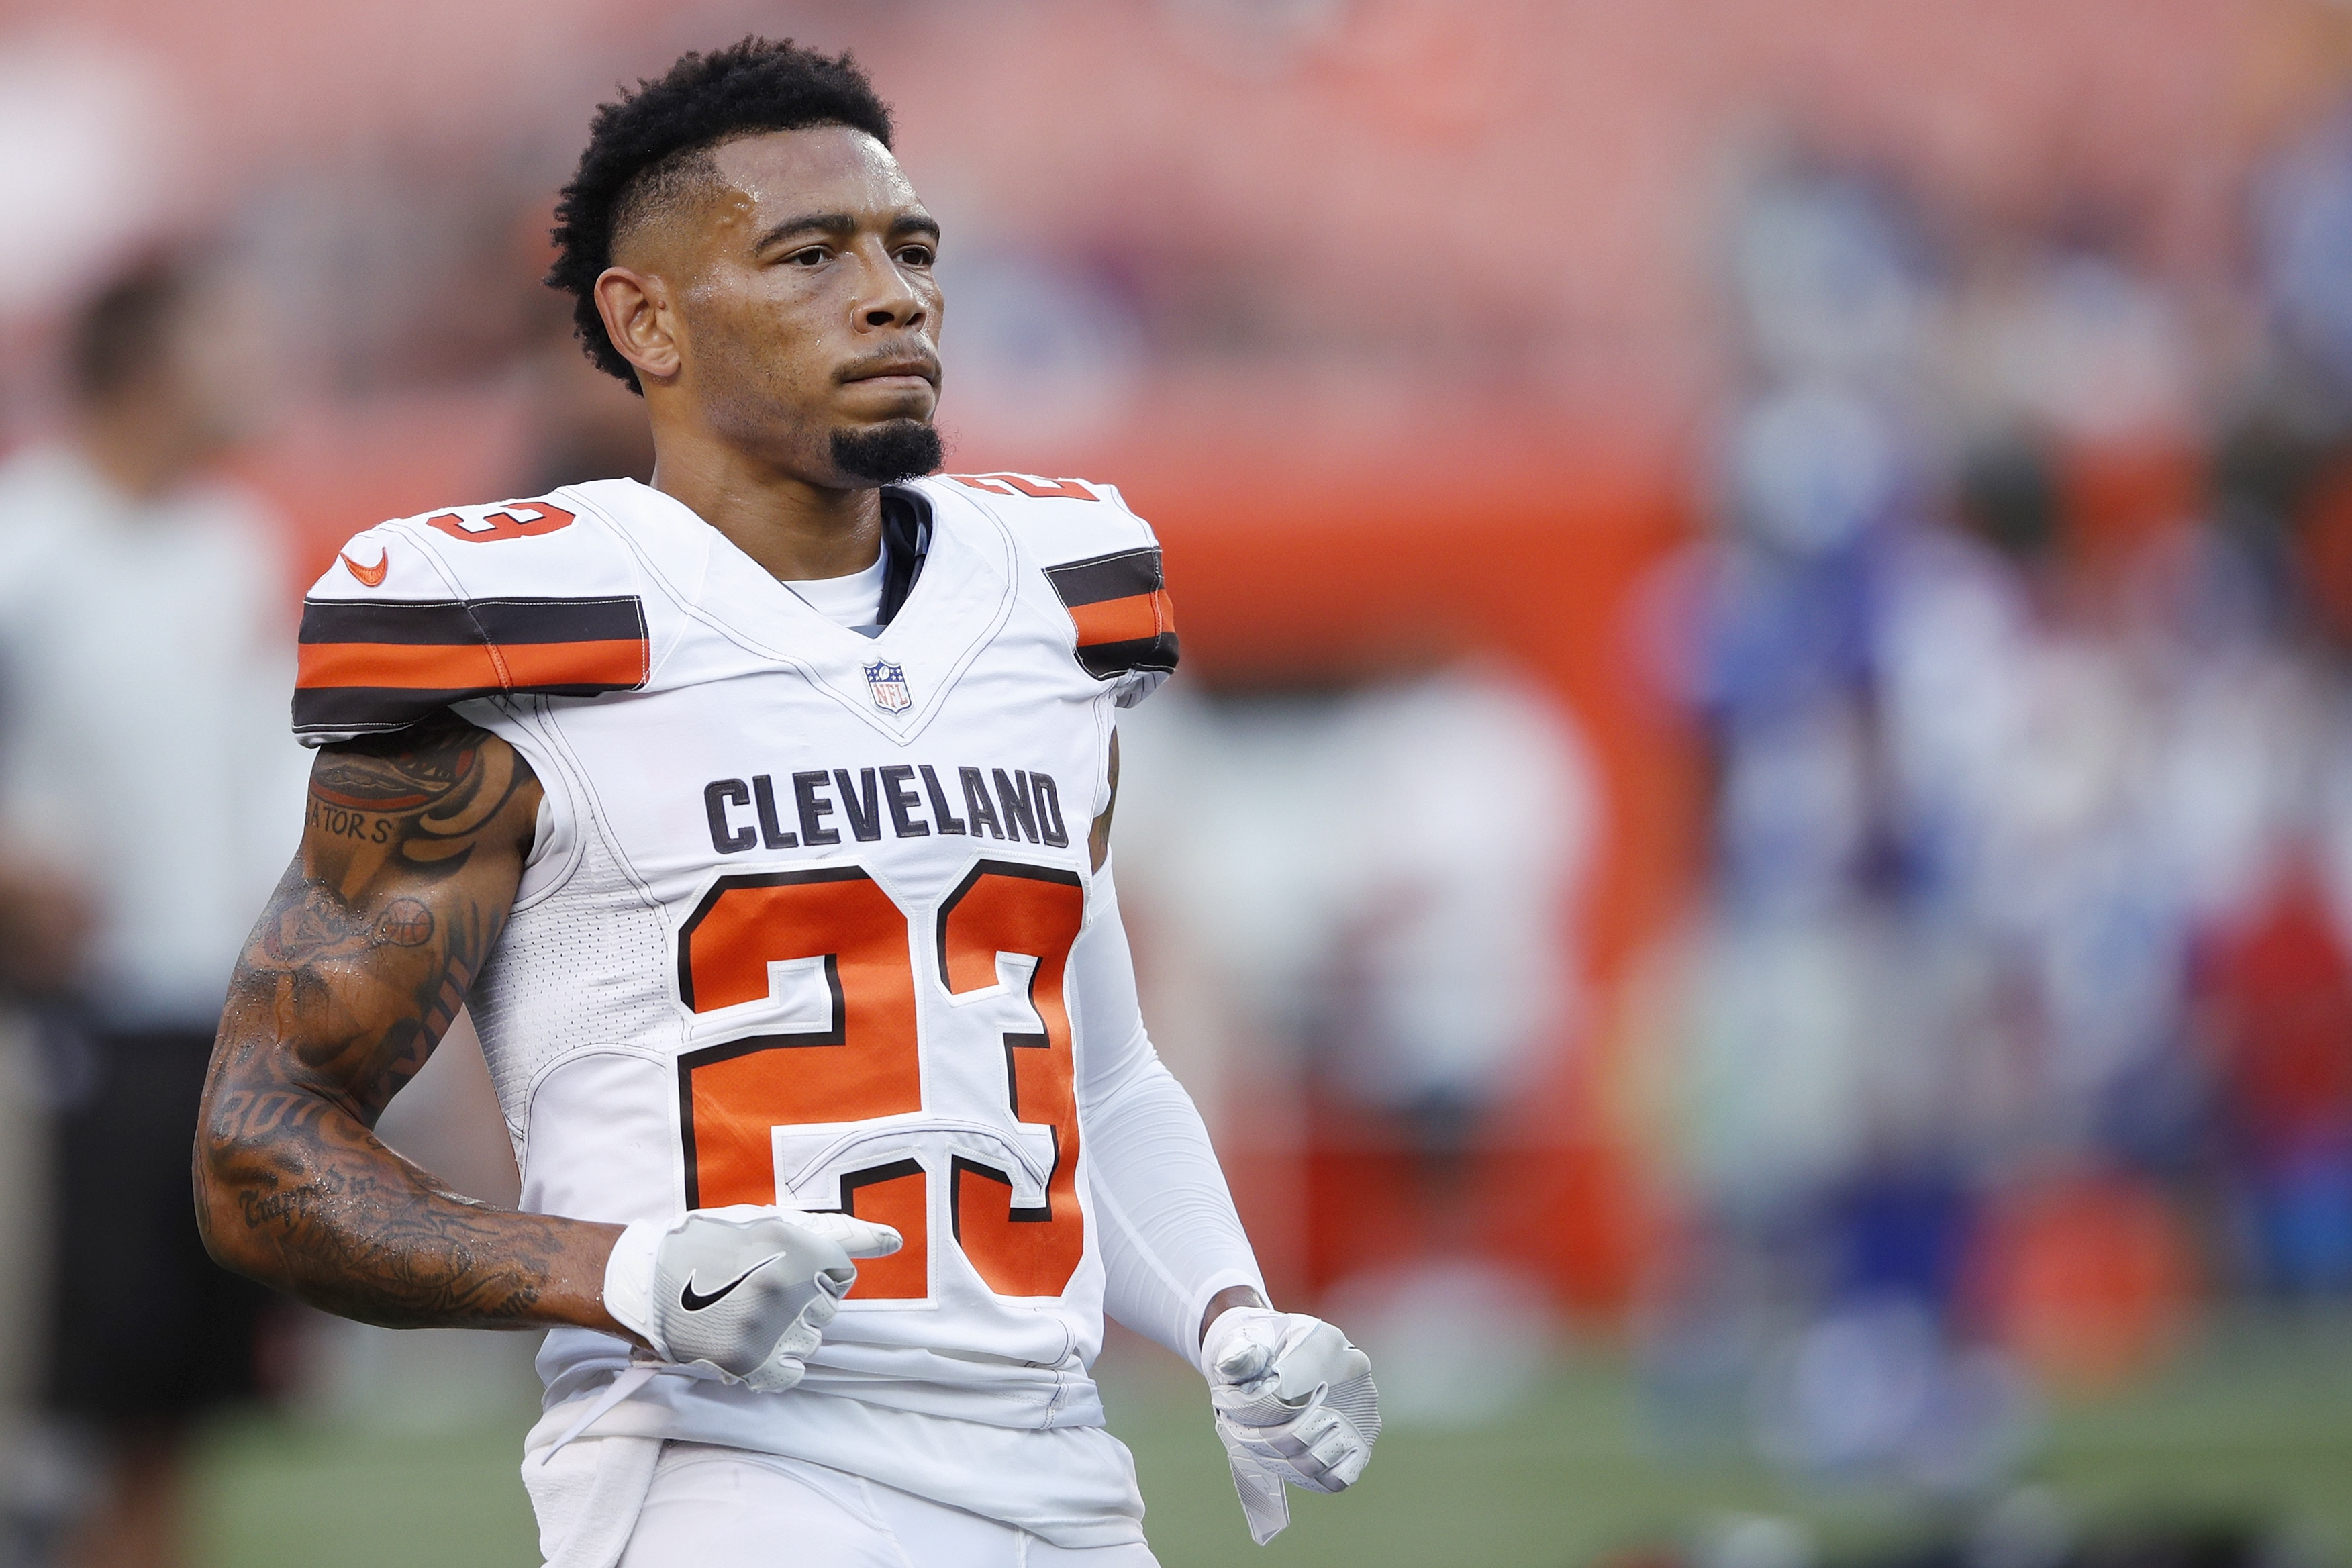 Cleveland Browns 'aggressively' trying to trade Joe Haden